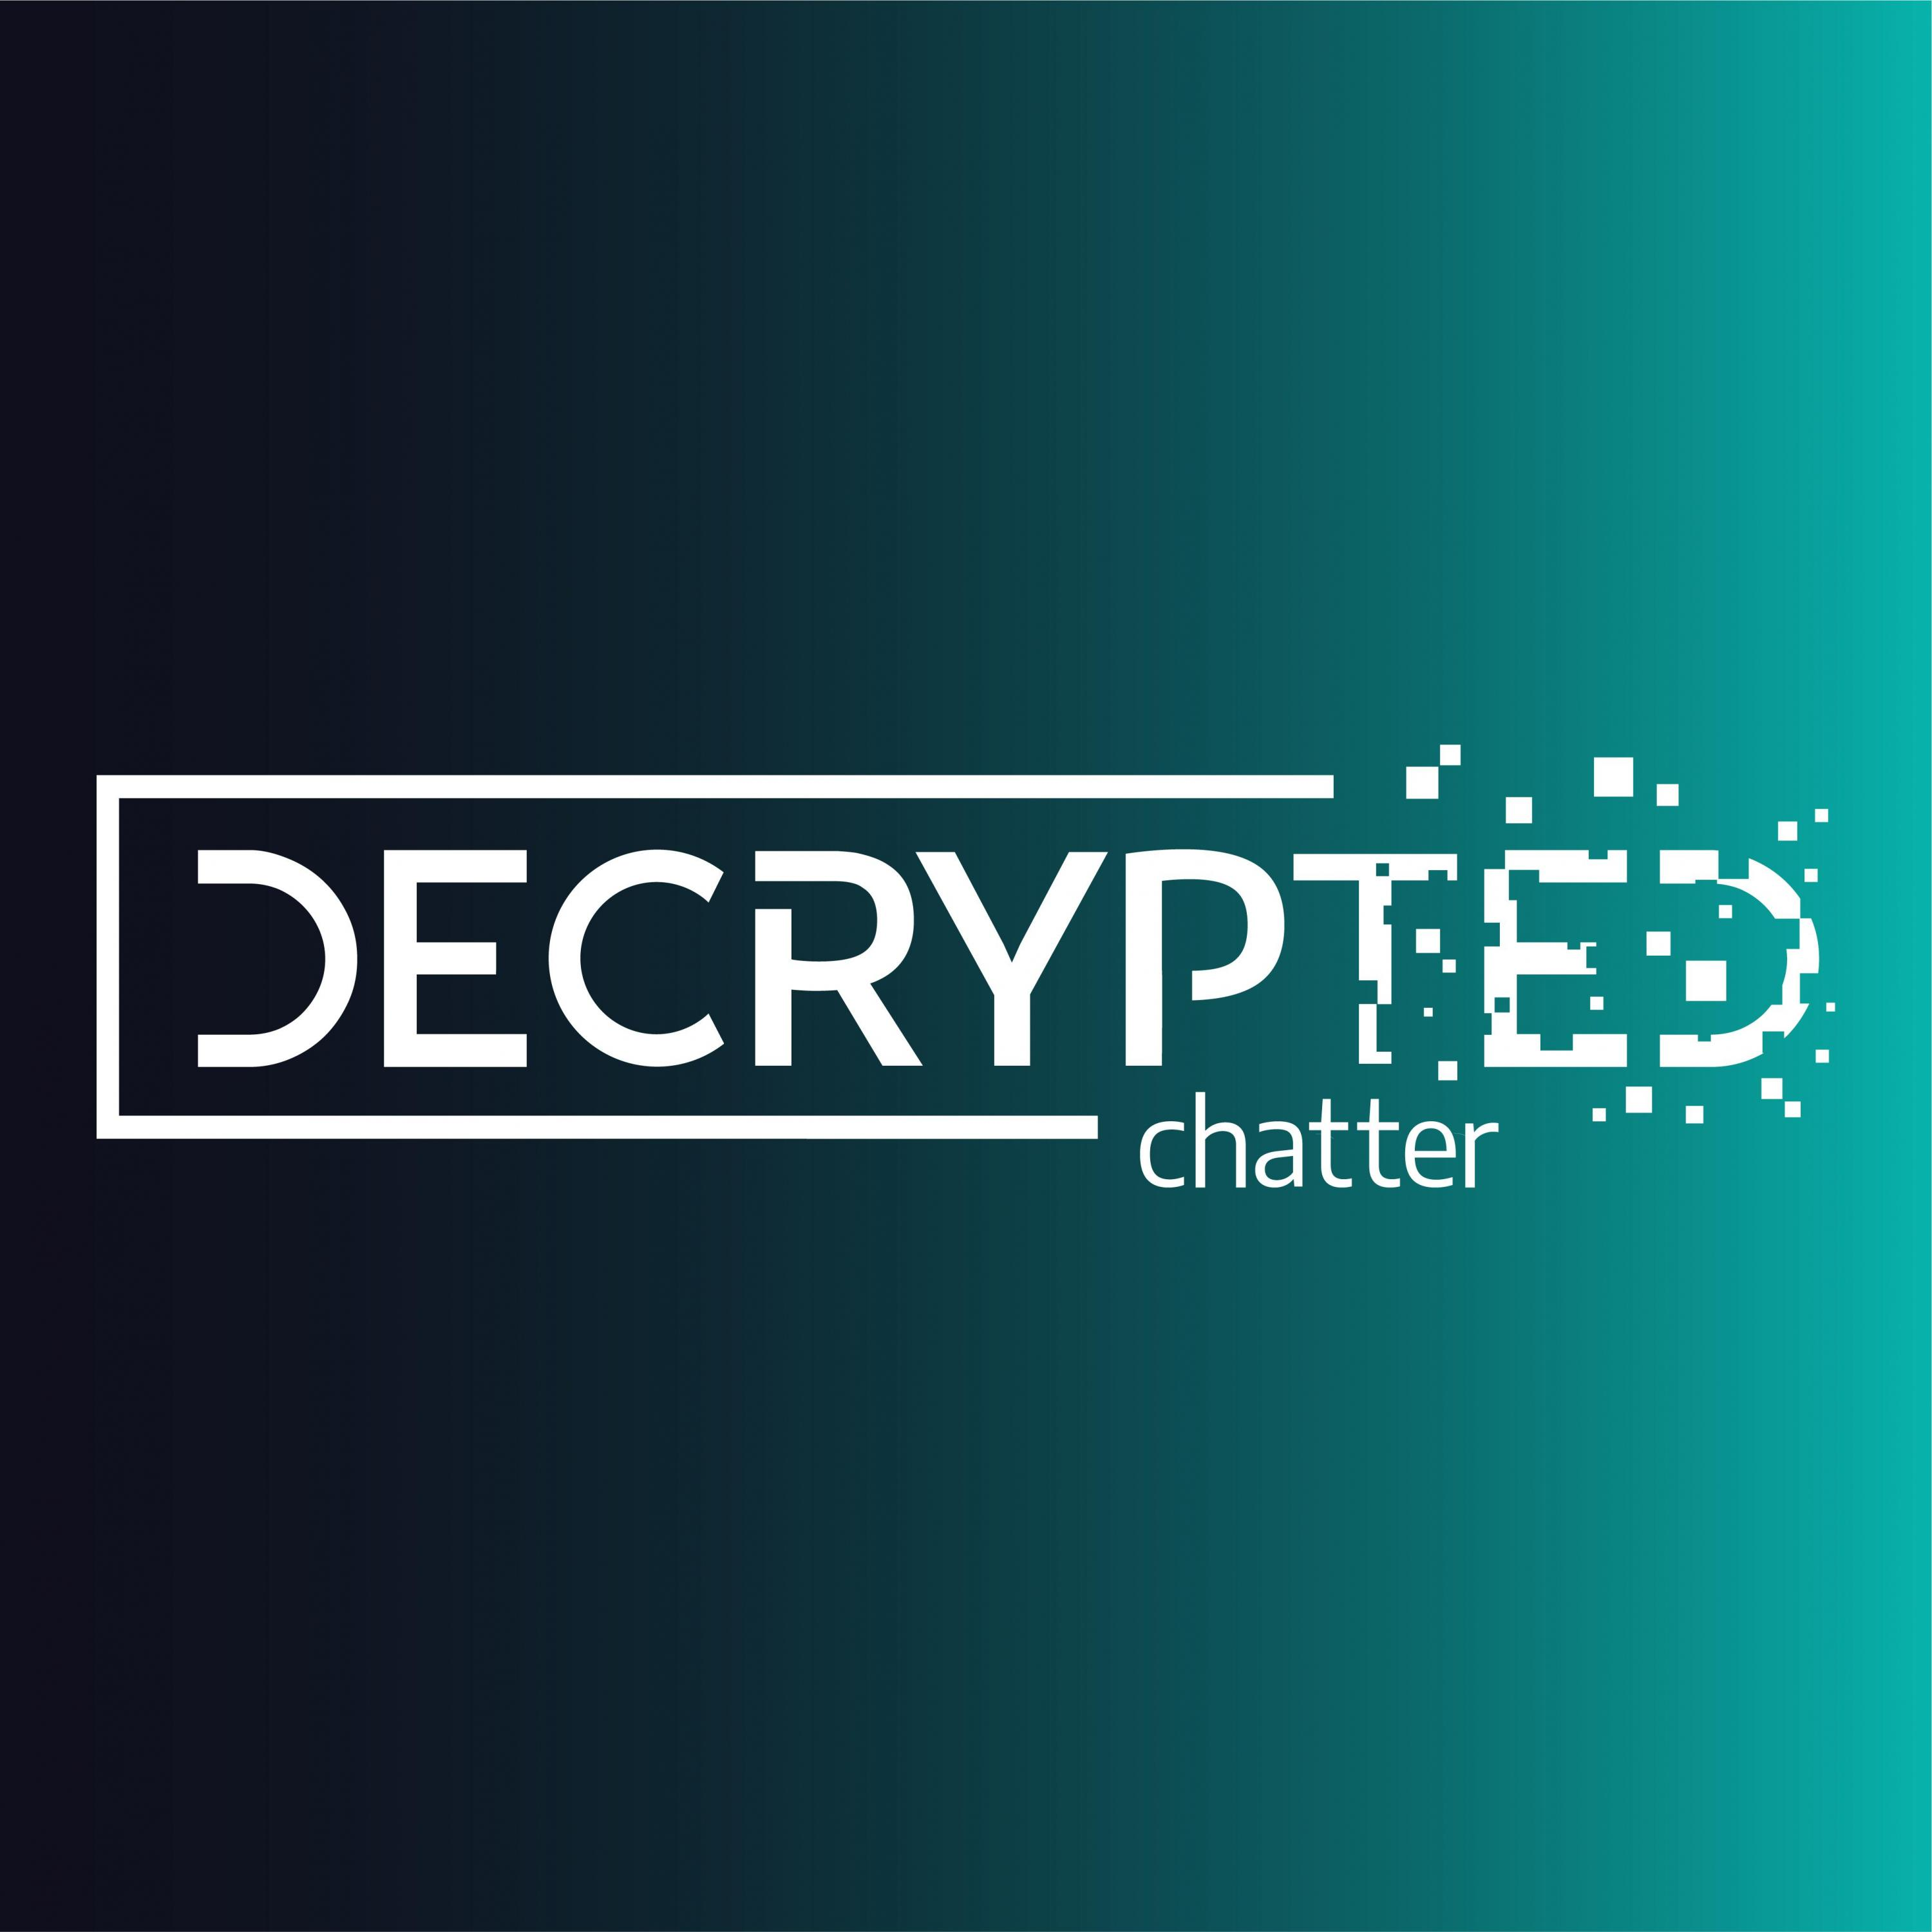 Decrypted Chatter